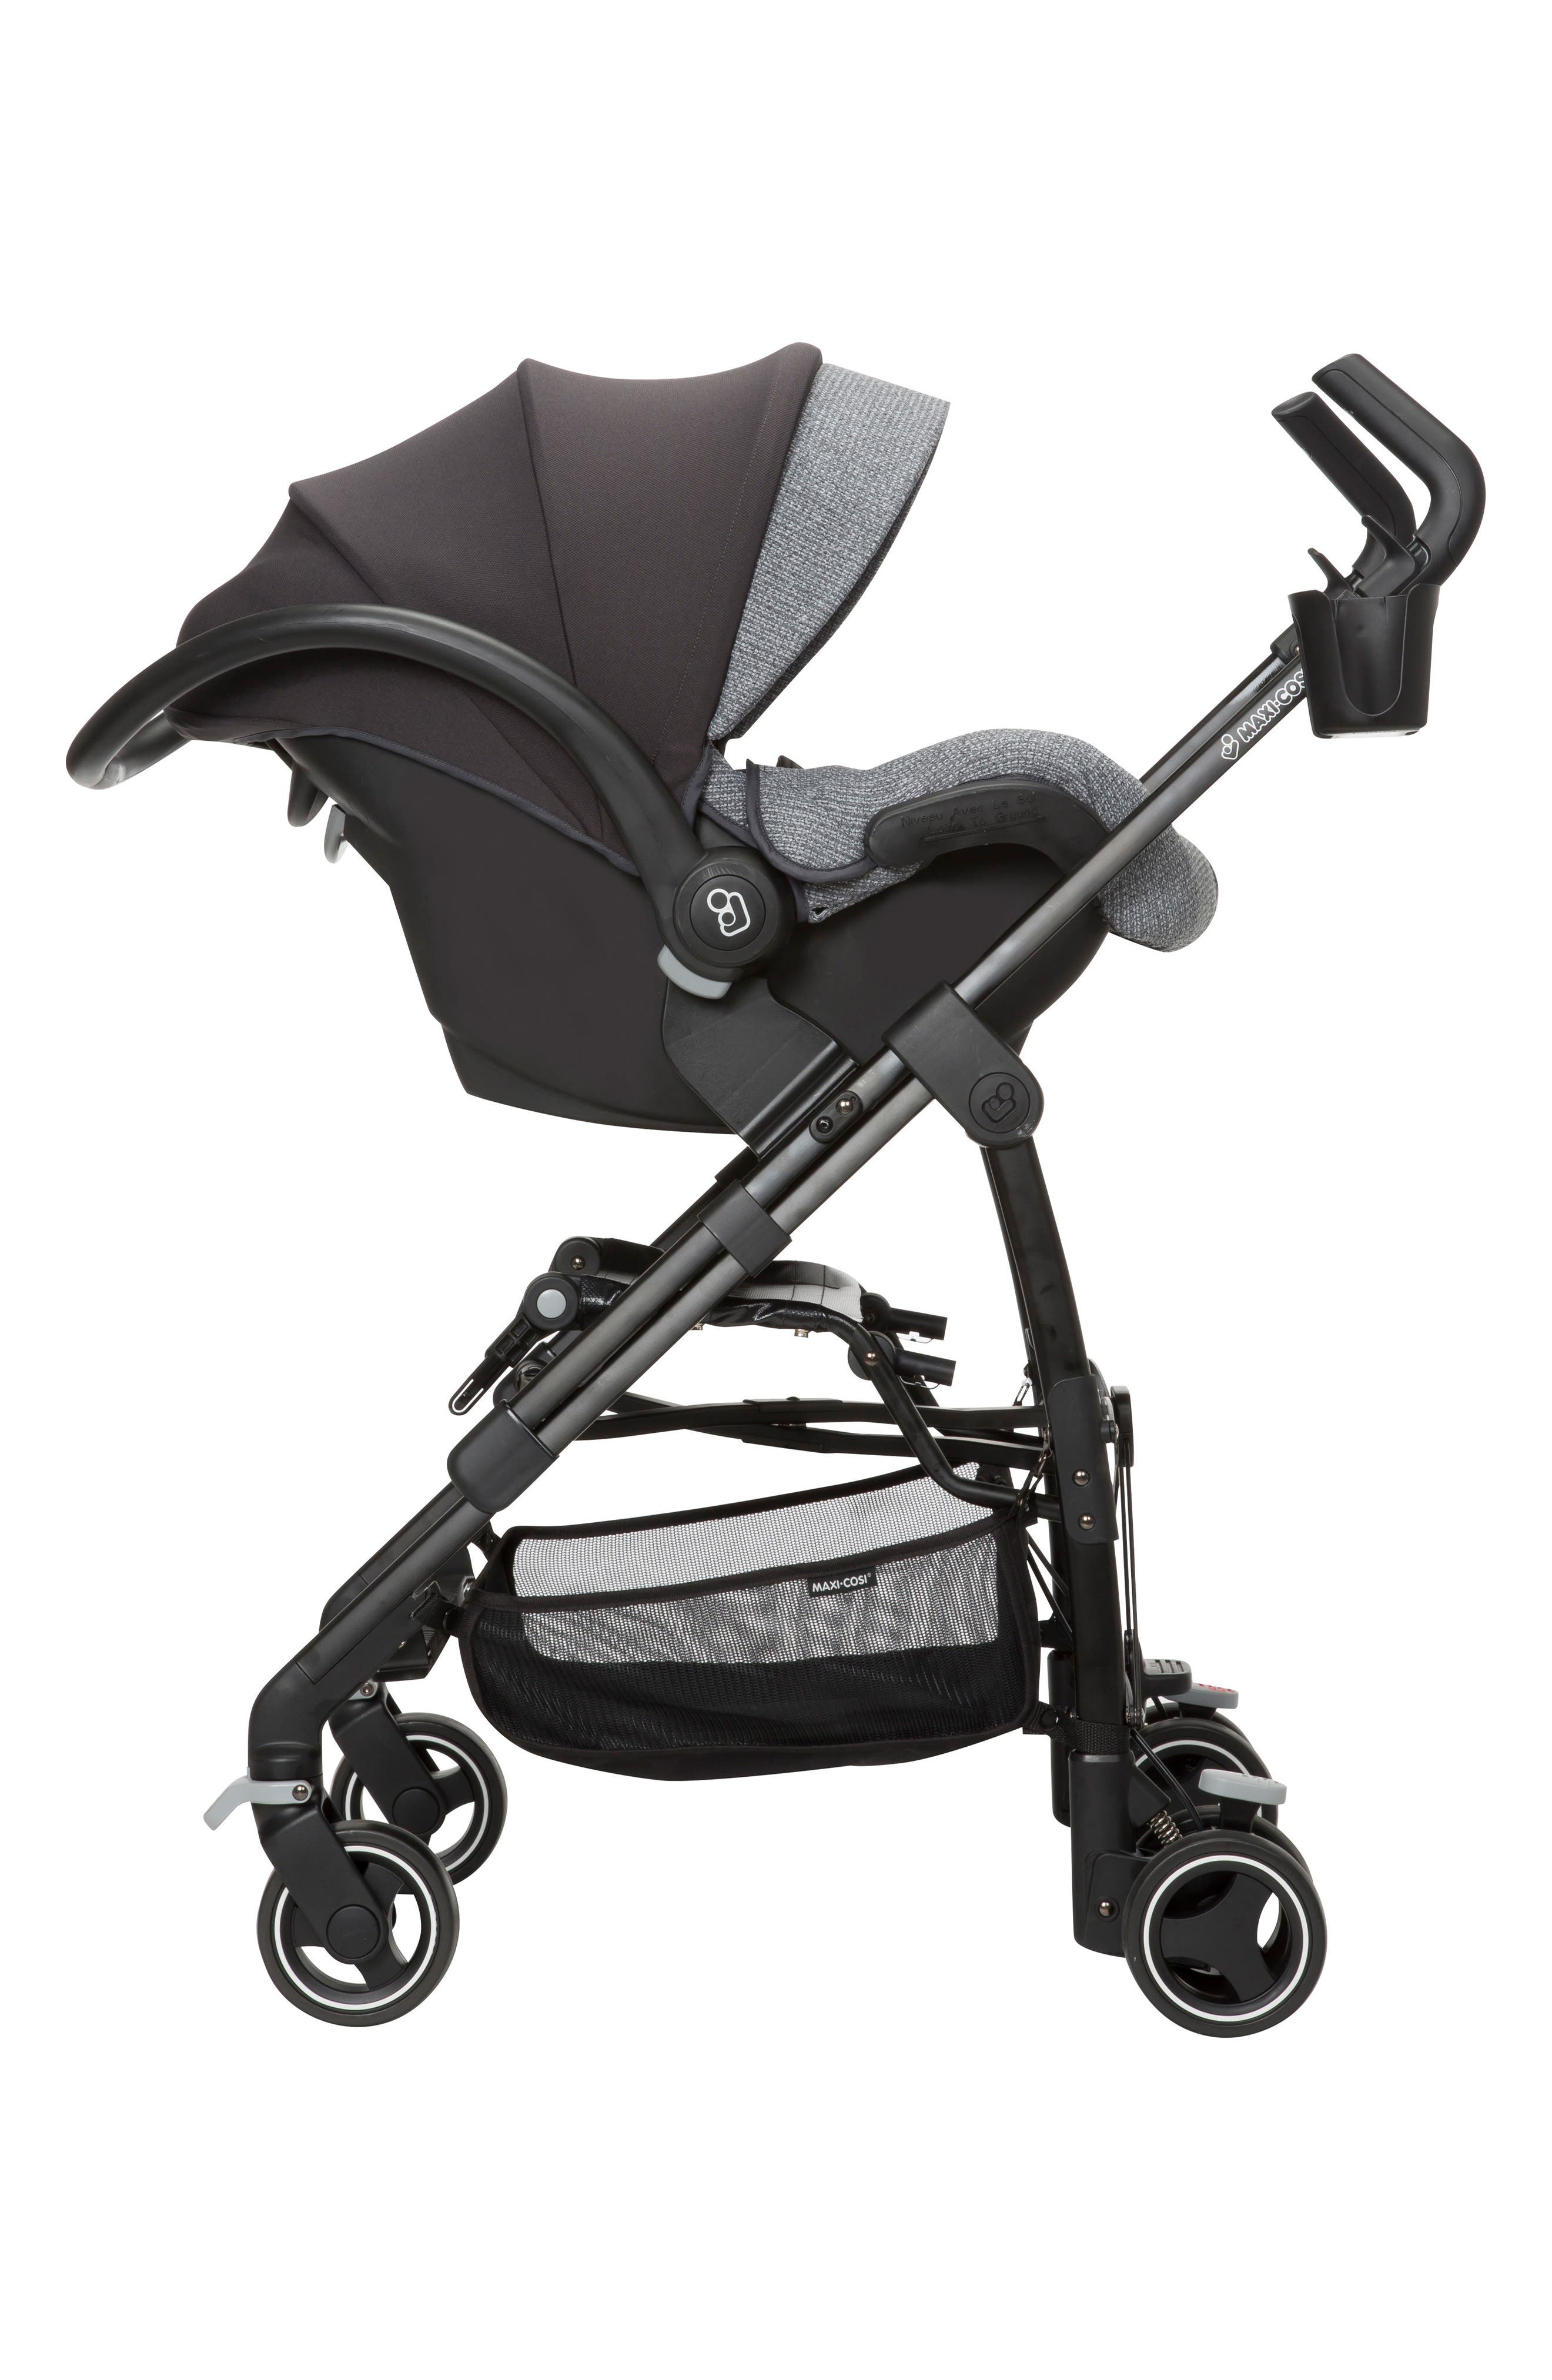 Dana Sweater Knit Special Edition Stroller,                             Alternate thumbnail 9, color,                             024